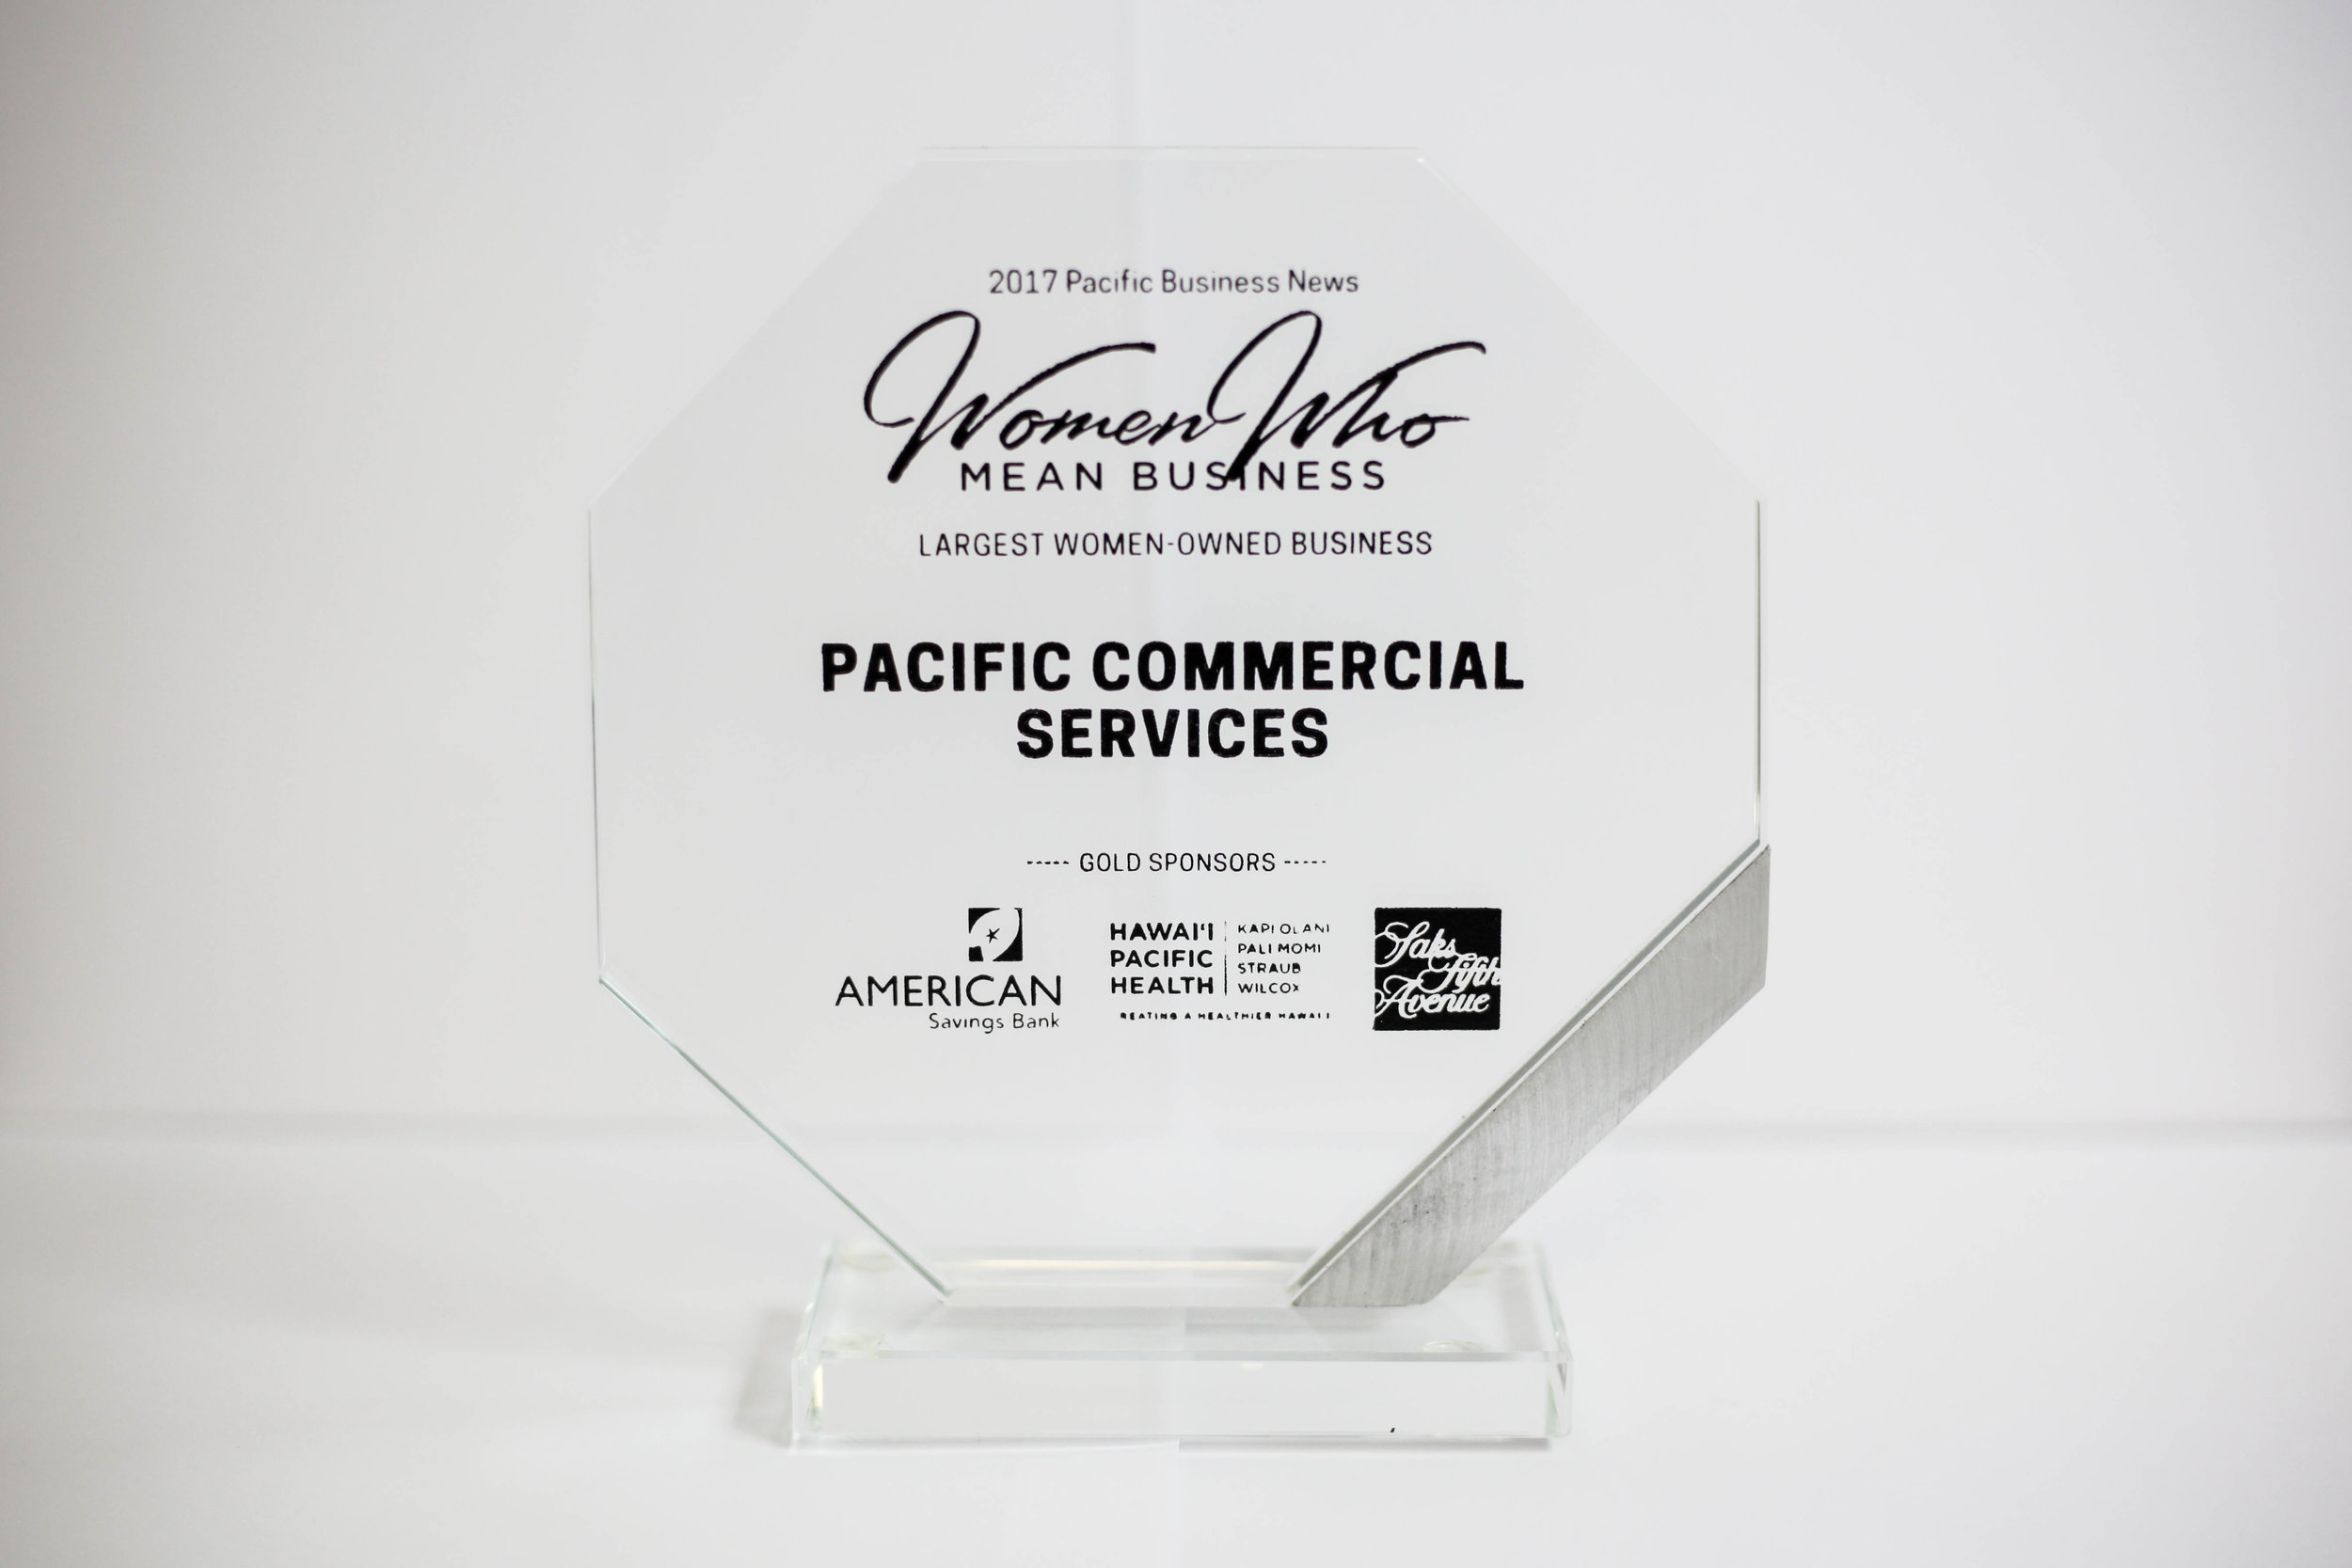 2017 Largest Women-Owned Business - Awarded by Pacific Business News